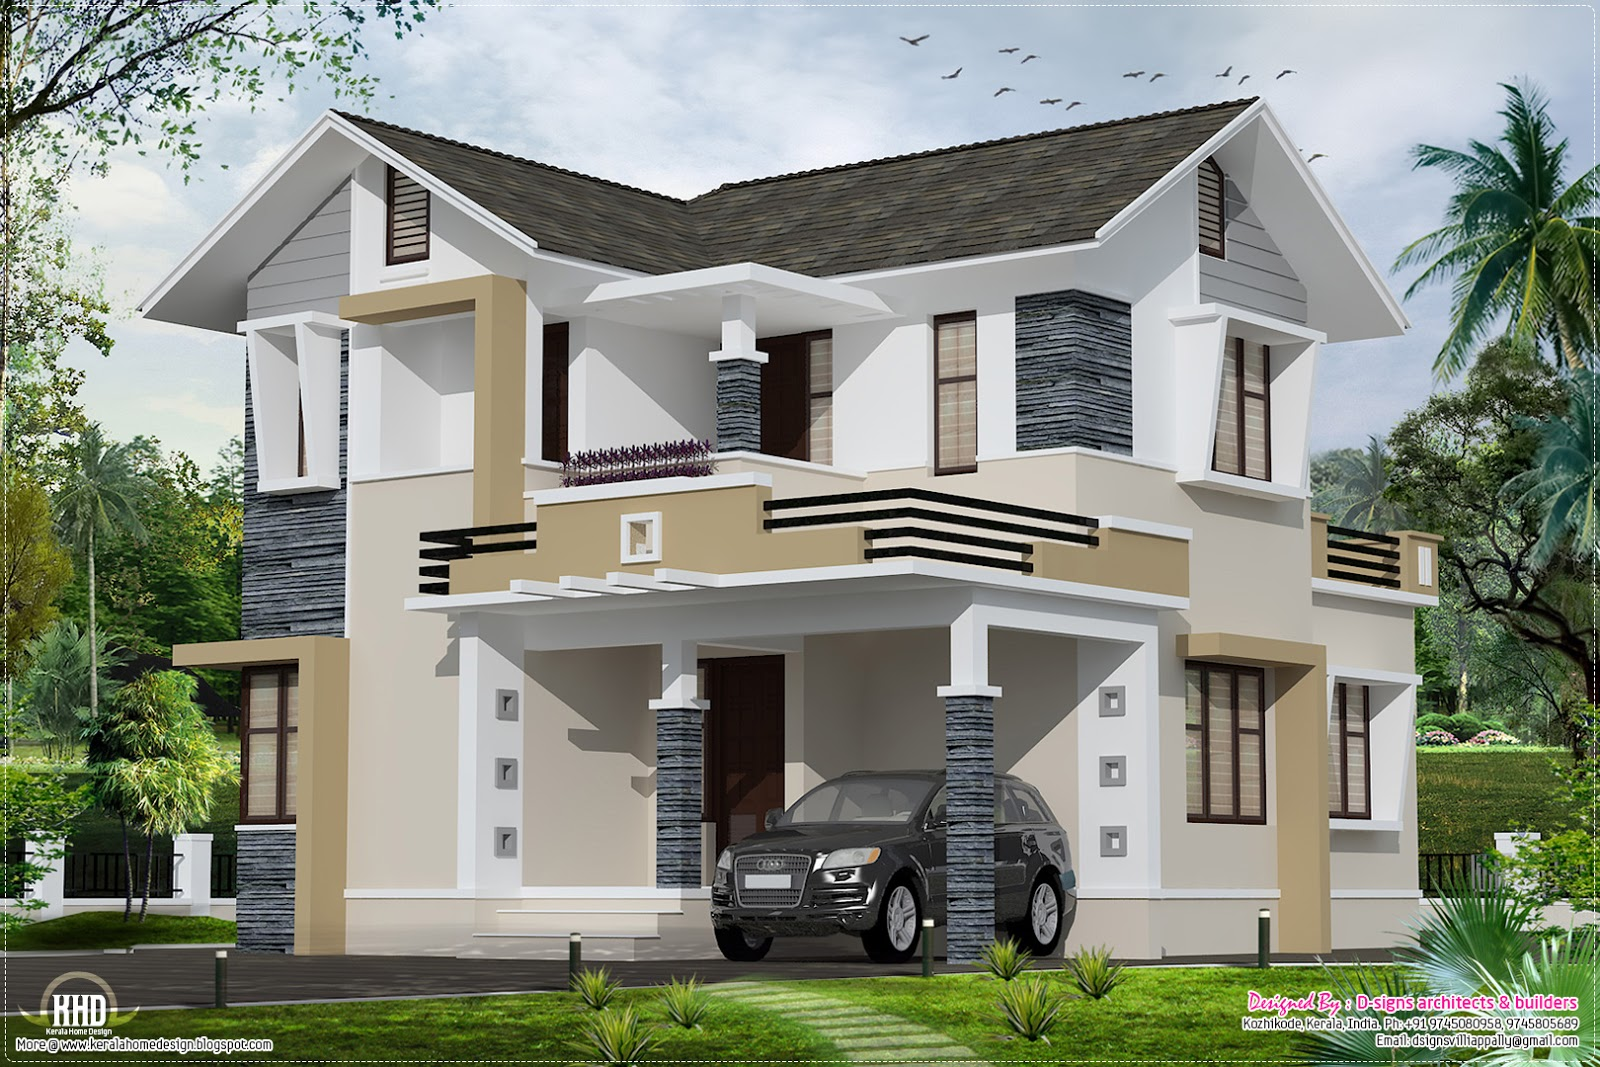 Stylish small home design kerala home design and floor plans for Compact home designs